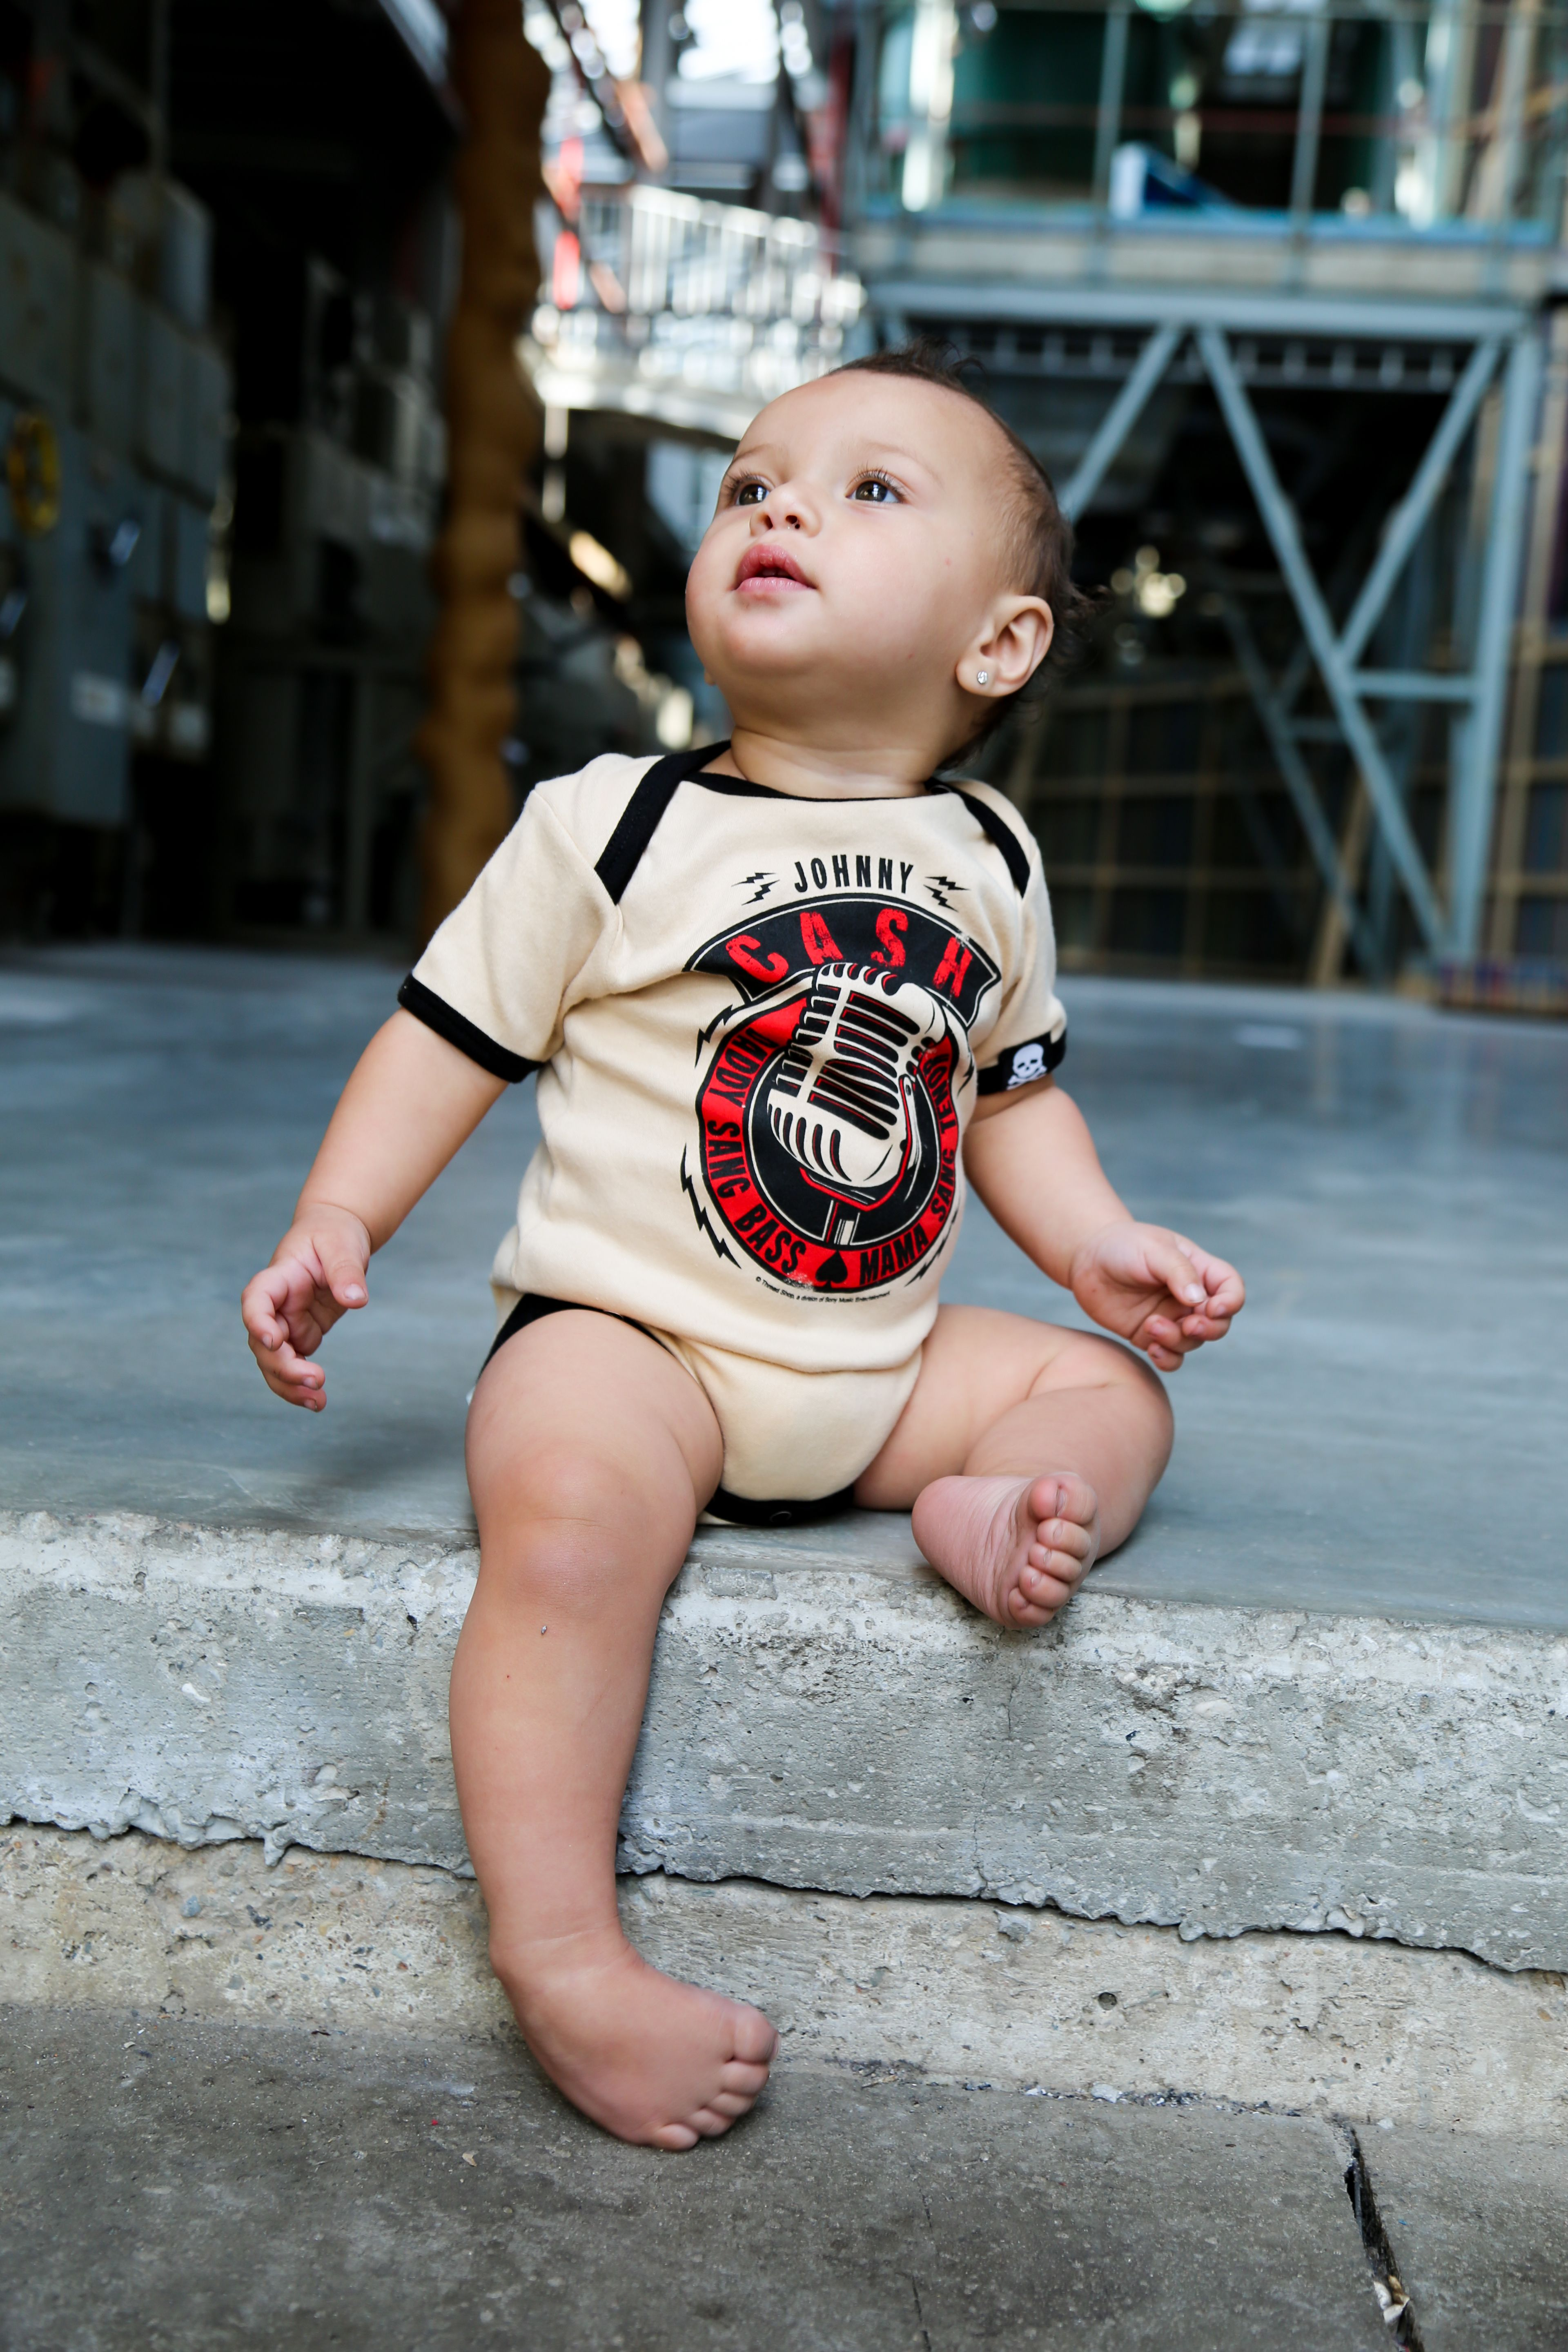 Johnny Cash Baby clothes ready to rock See for yourself s